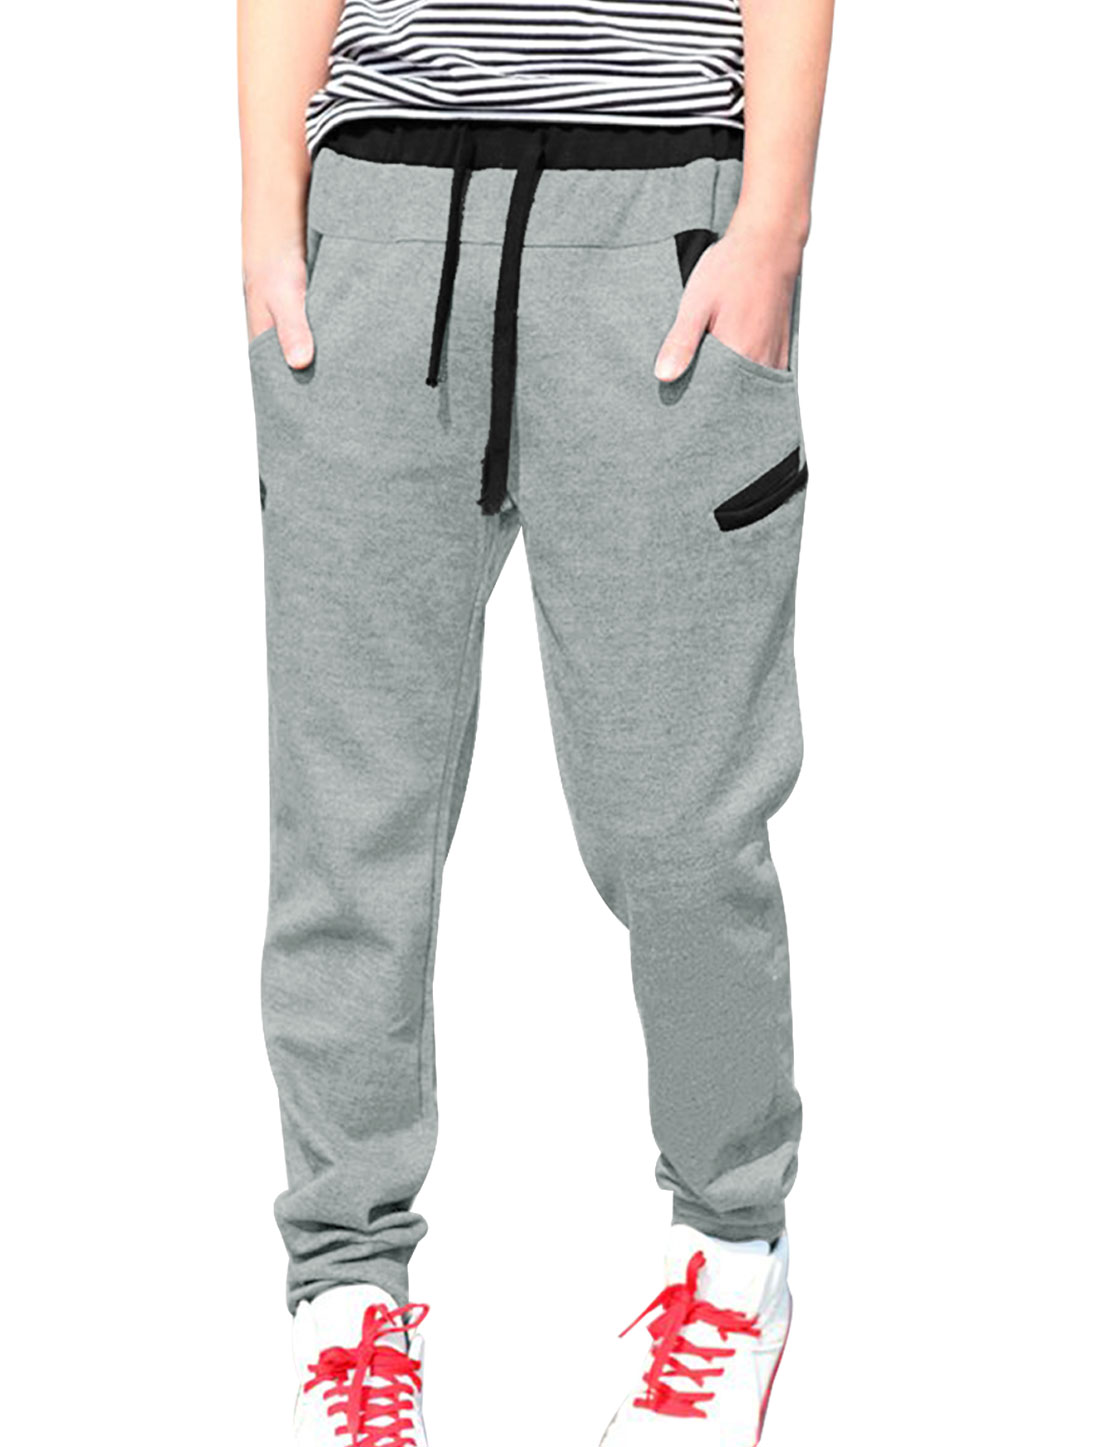 Mens New Fashion Elastic Waist Letter Prints Back Light Gray Sweatpants W28